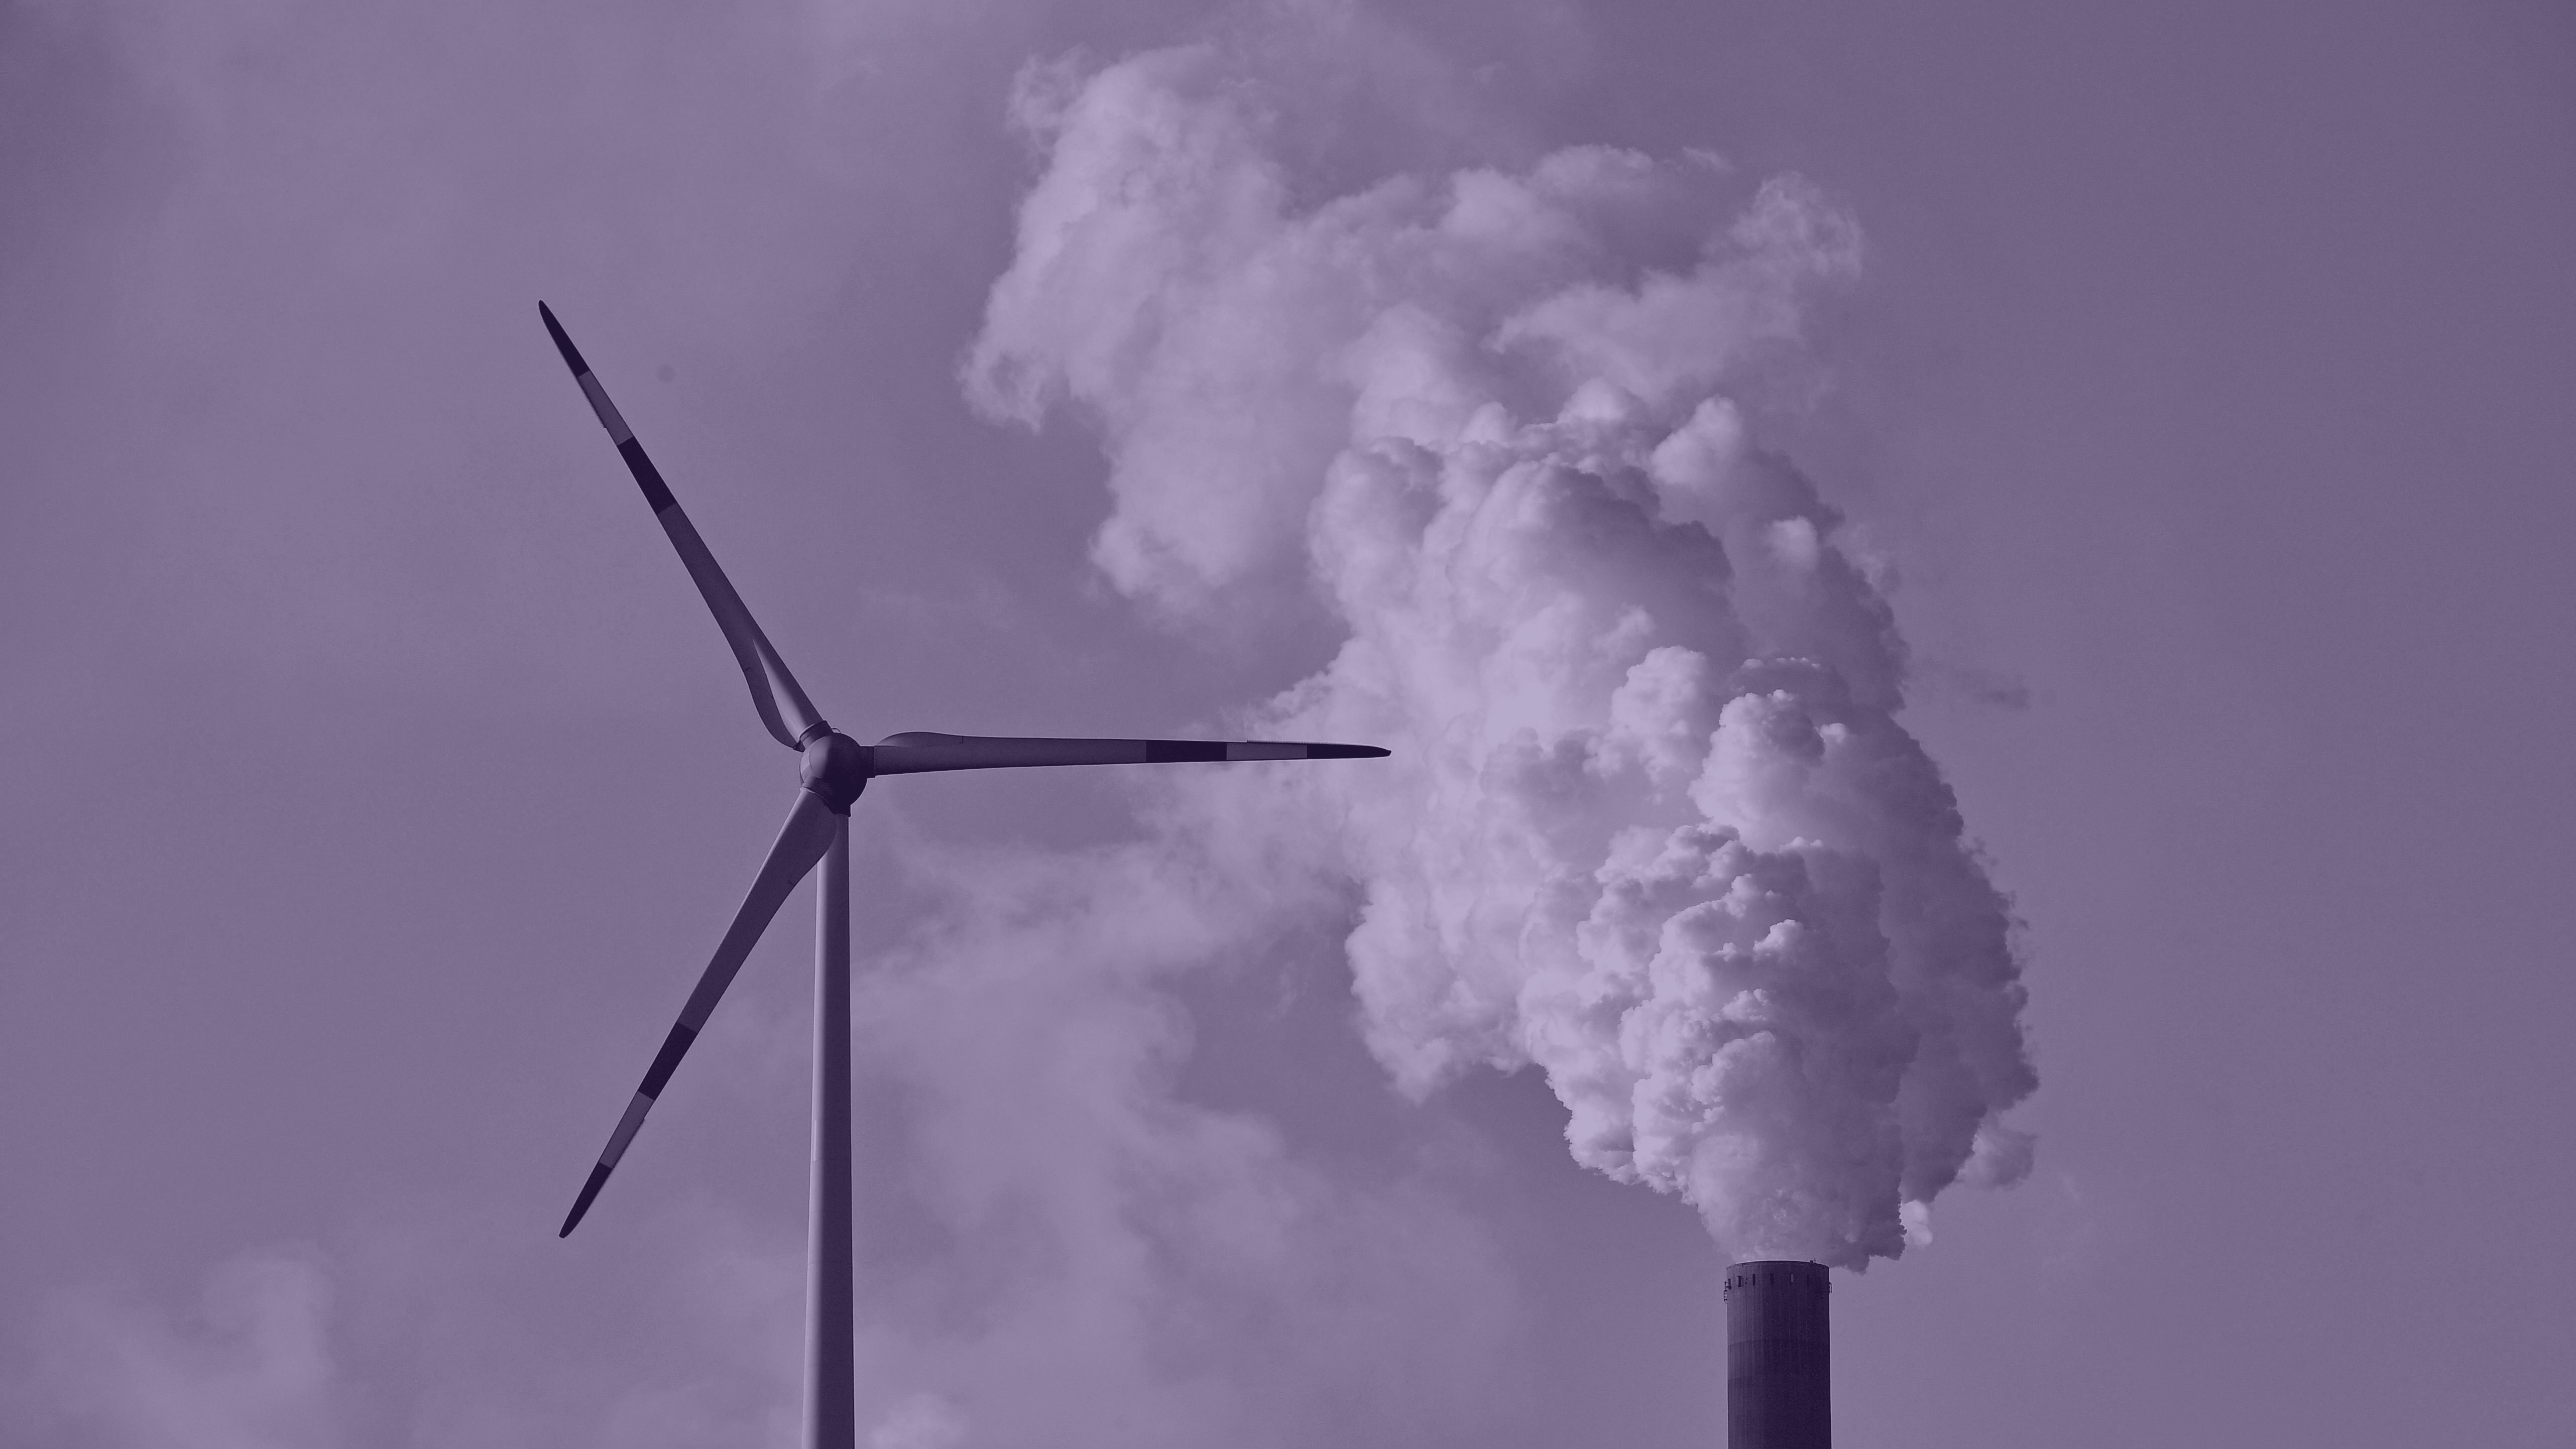 A coal-burning power plant steams behind wind generators in Gelsenkirchen, Germany while the 23rd UN Conference of the Parties (COP) climate talks end in Bonn, Germany, Friday, Nov. 17, 2017. (AP Photo/Martin Meissner)